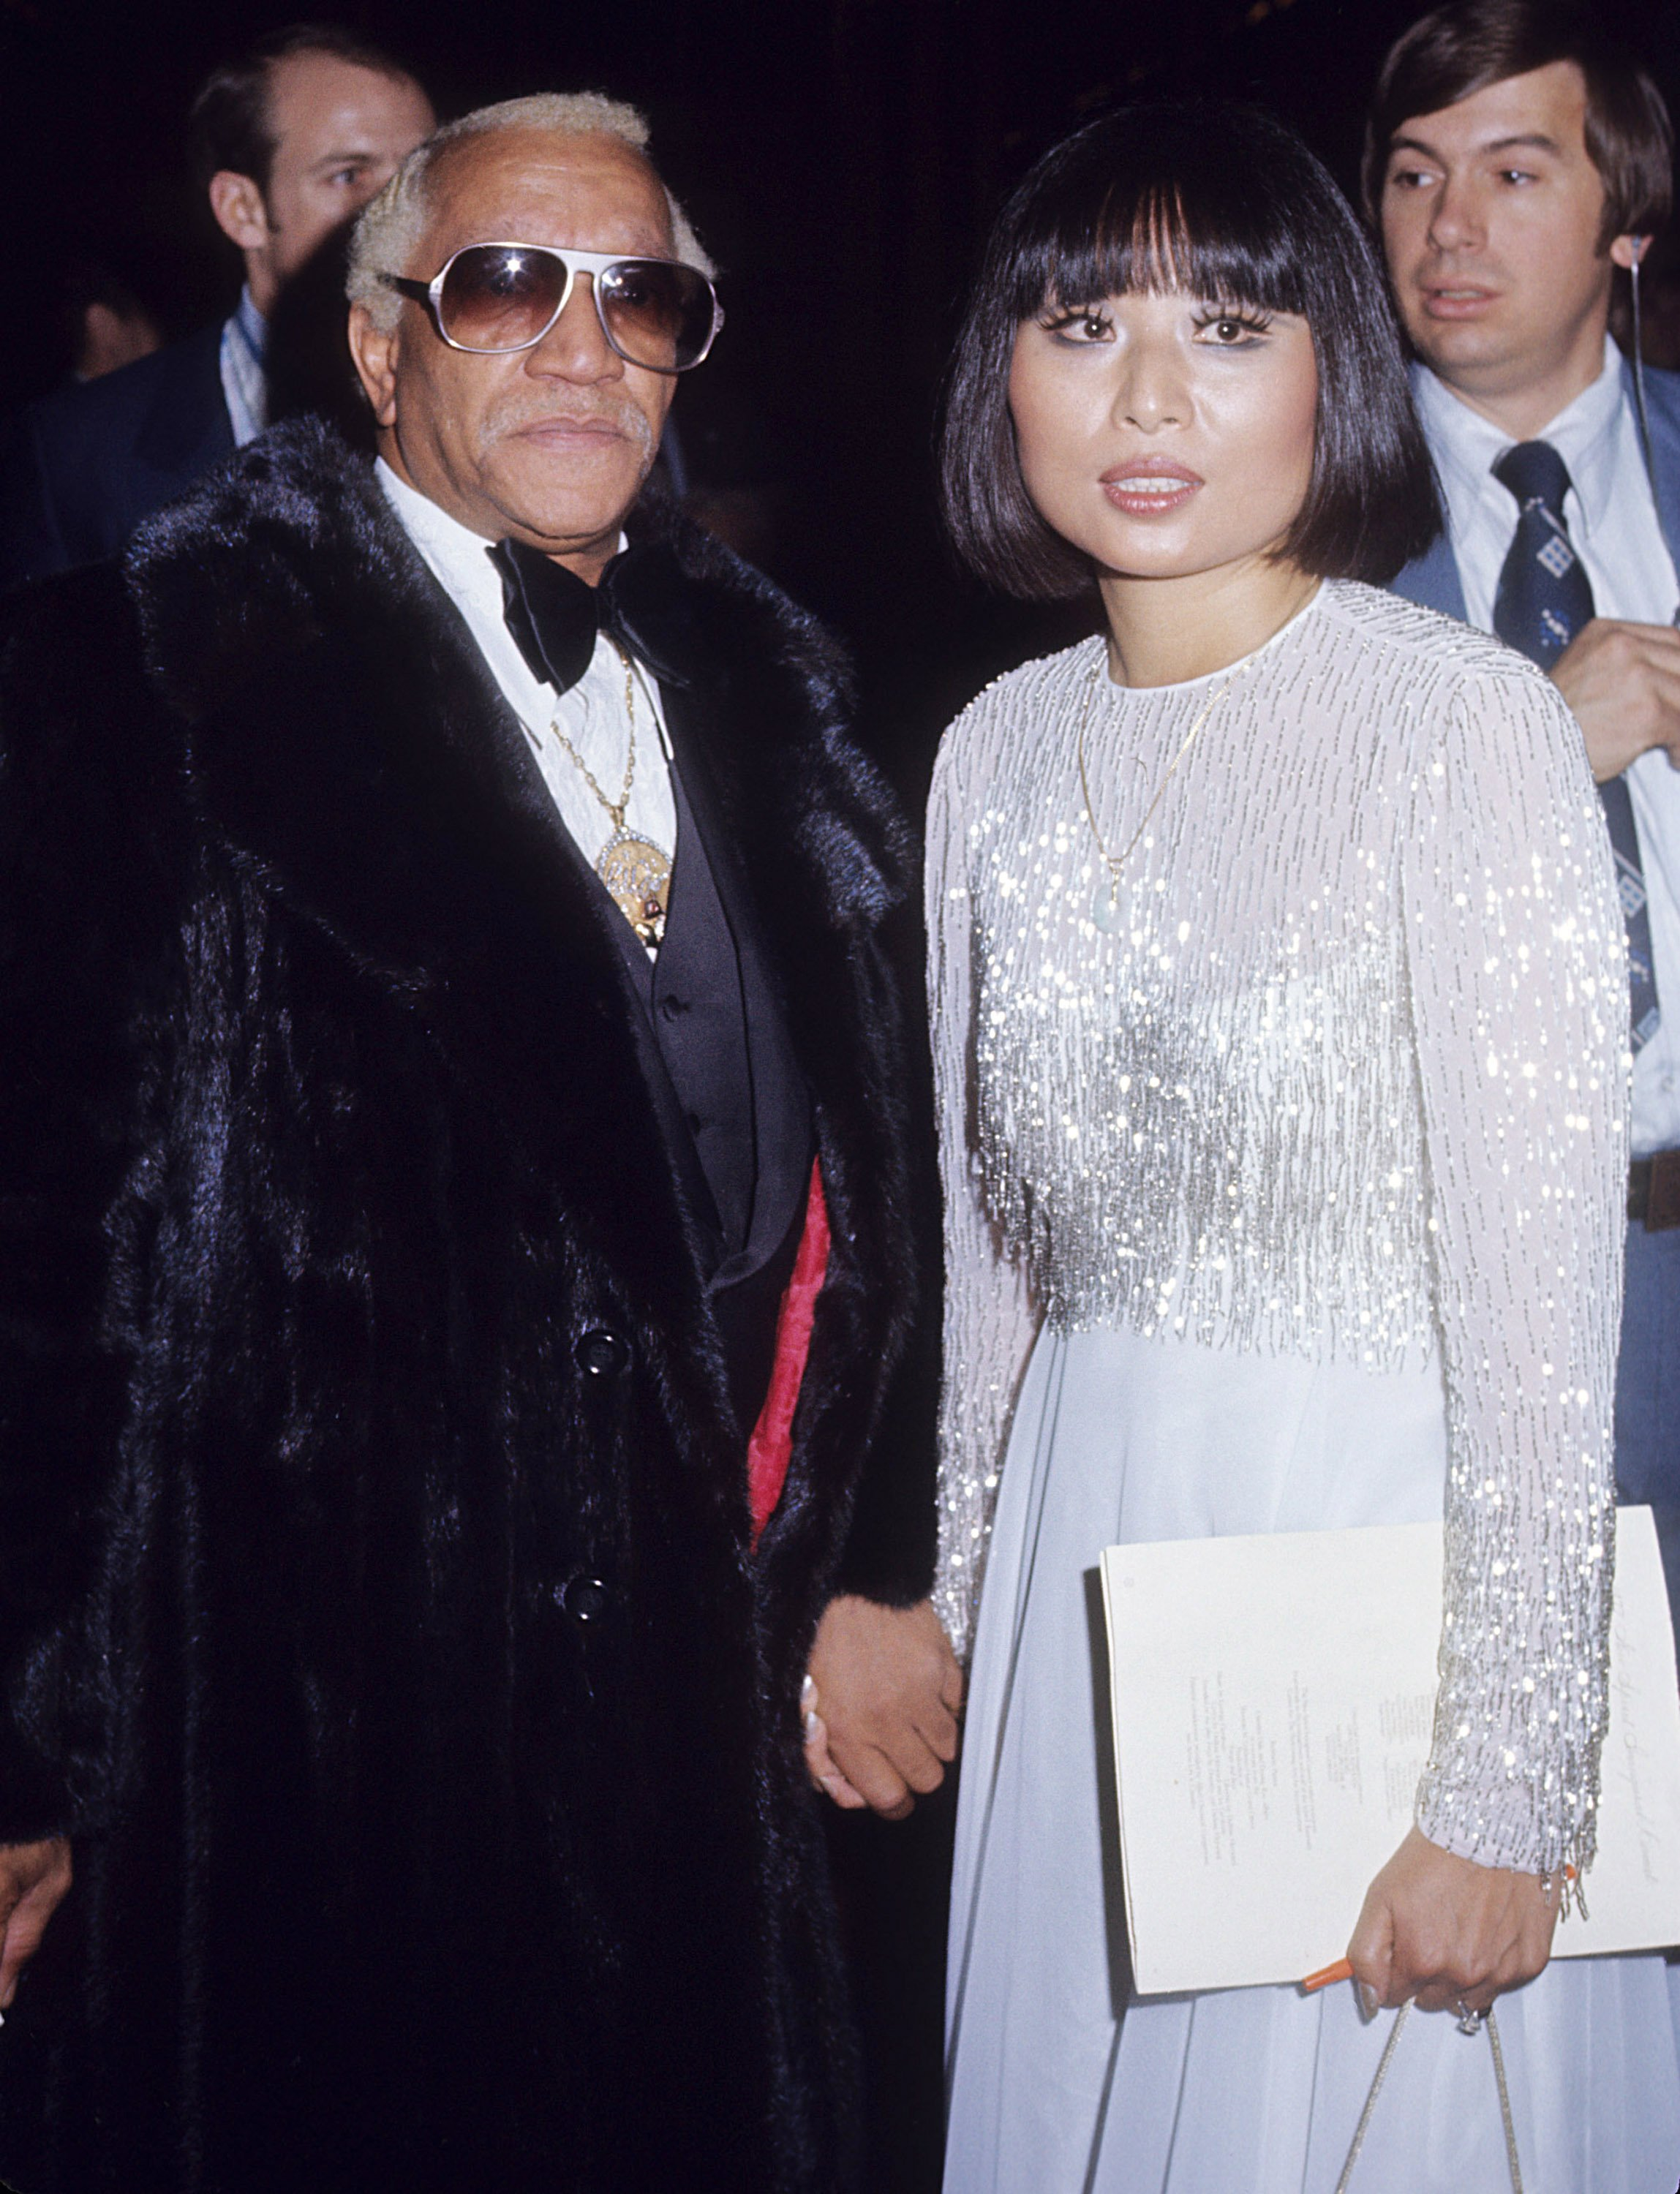 Redd Foxx and wife Yun Chi Chung at President Jimmy Carter's Inaugural Ball on January 20, 1977 in Washington D.C. | Photo: Getty Images